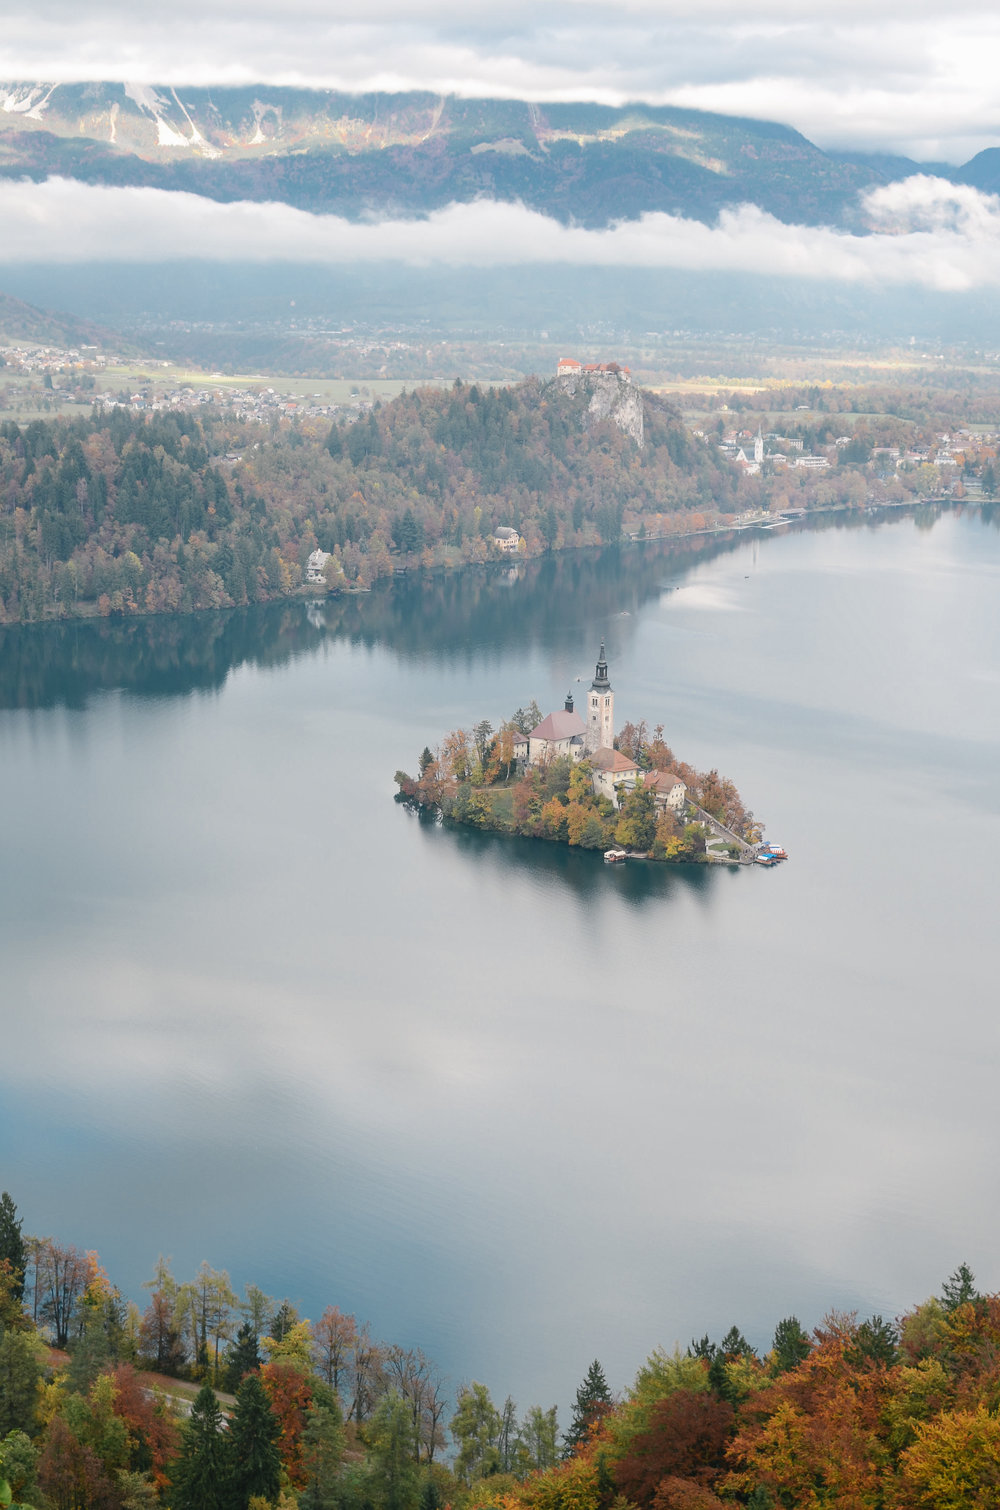 lake-bled-slovenia-travel-guide-lifeonpine_DSC_1592.jpg